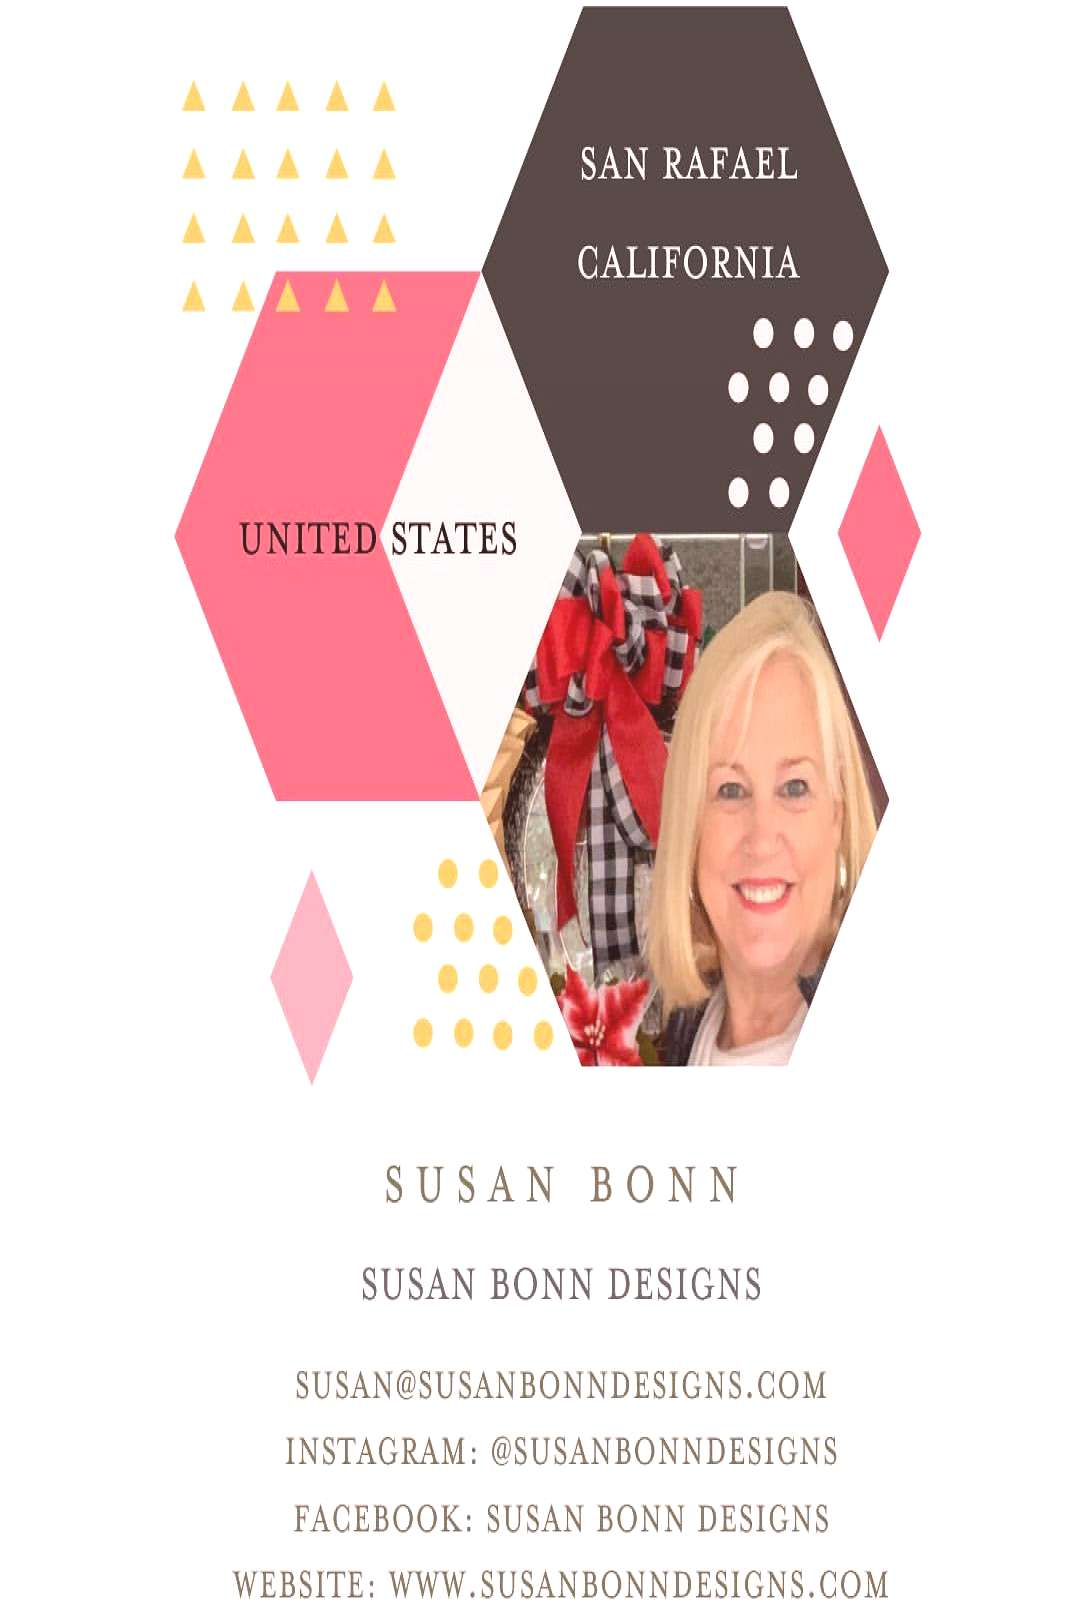 Its #introductionfriday! Today we want you to meet Susan Bonn, o